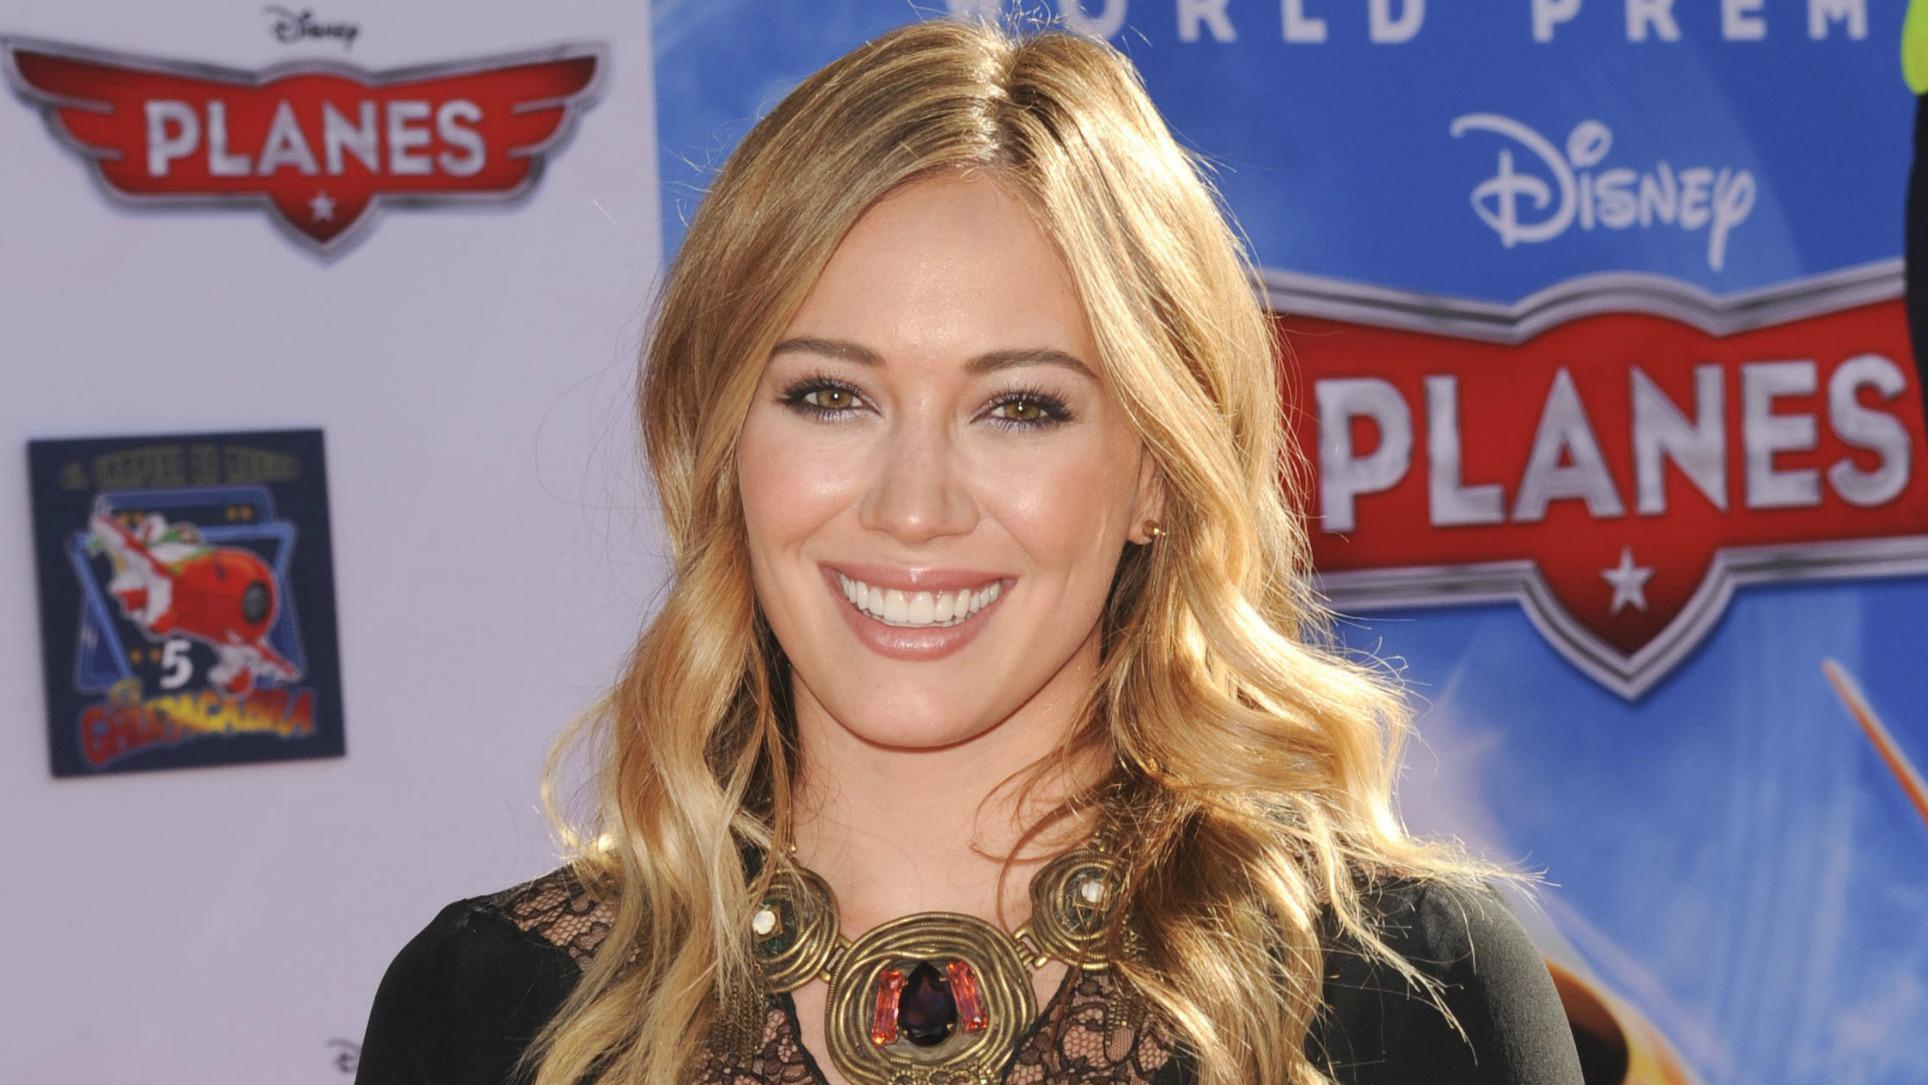 """Is <del>Lizzie McGuire</del> Hilary Duff's new song a rip off of Sheryl Crow's """"Soak Up the Sun?"""""""